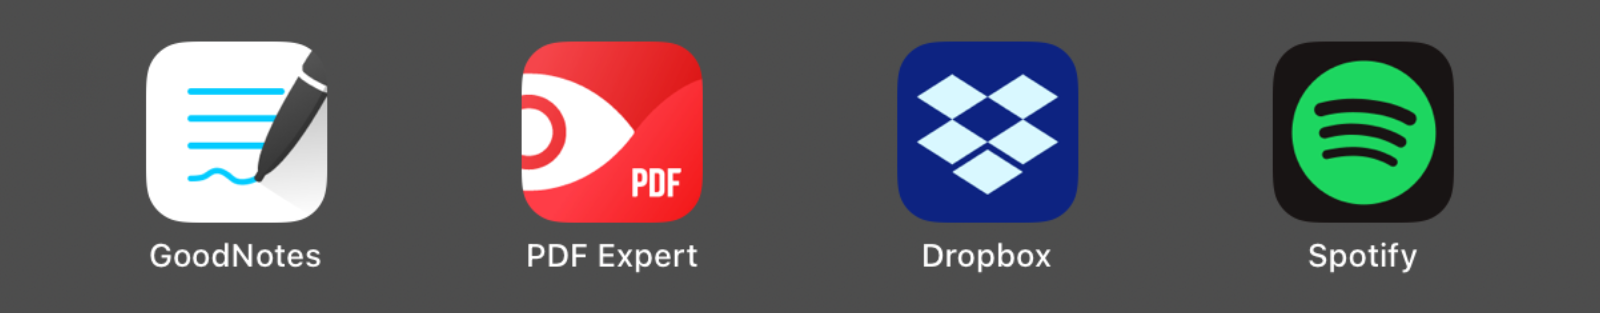 App icons for GoodNotes, PDF Expert, Dropbox, and Spotify